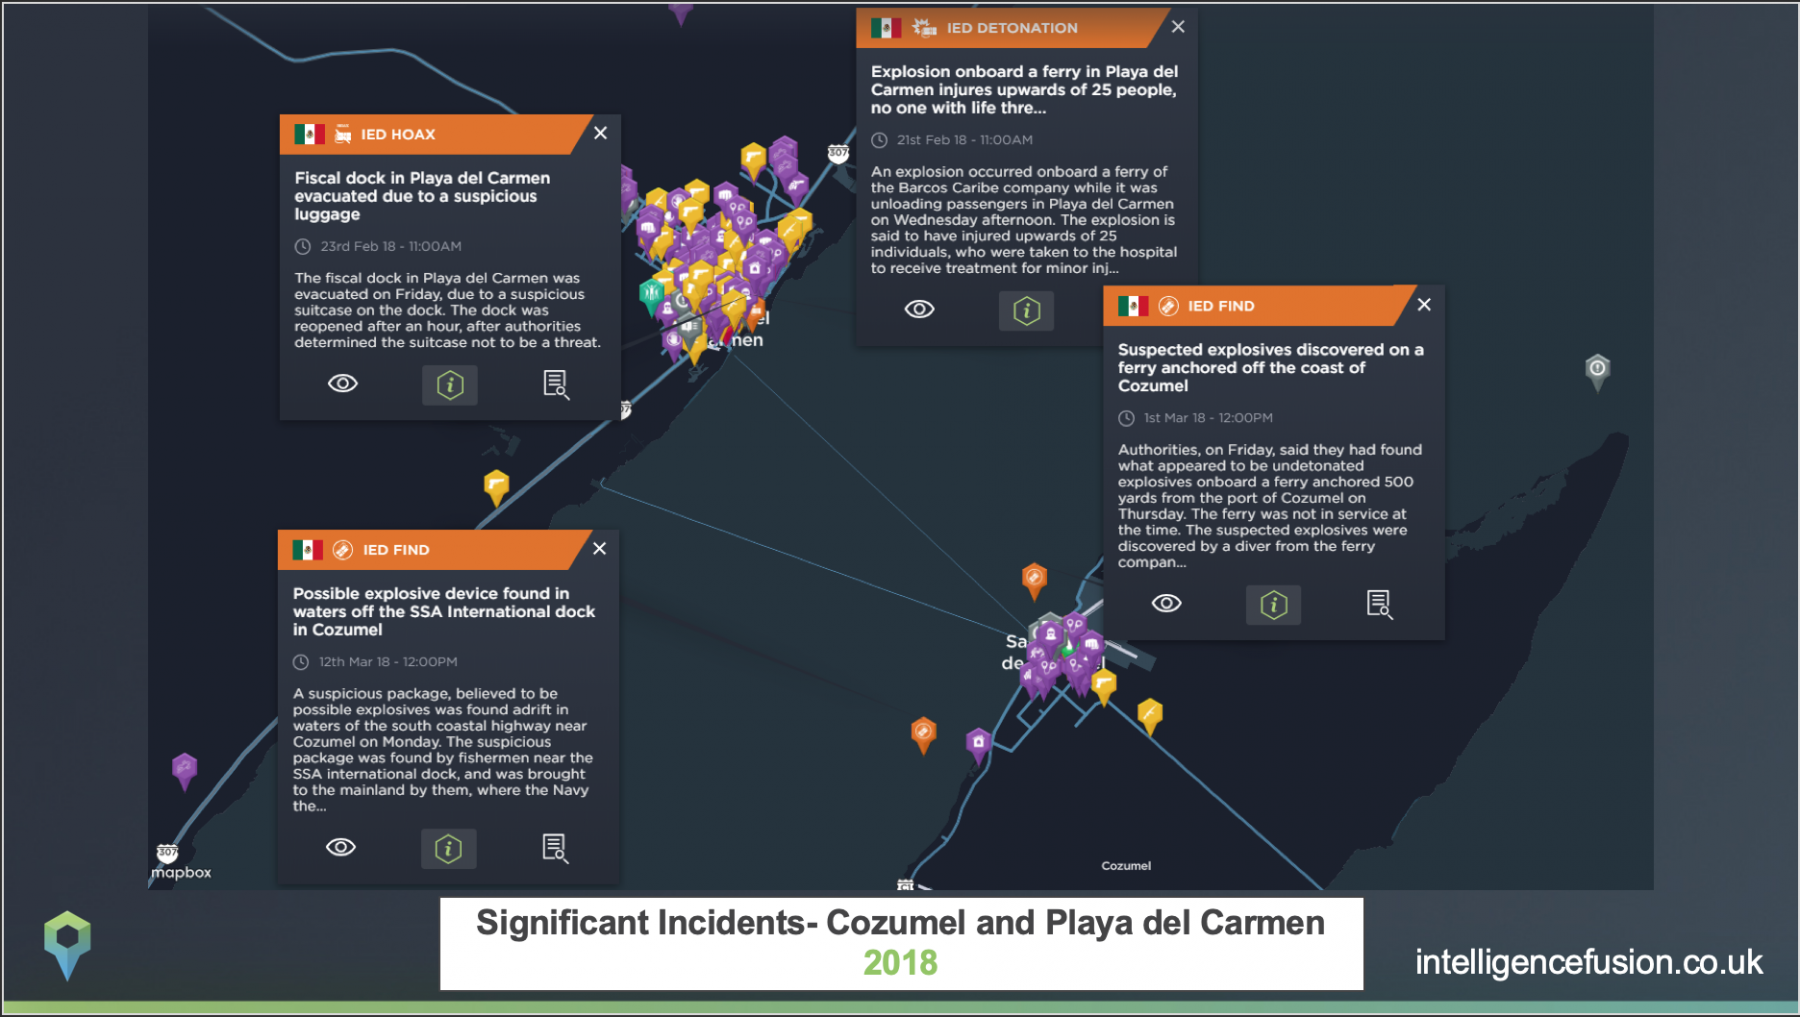 Significant incidents plotted on a map that affect the Caribbean cruise industry in Cozumel and Playa del Carmen